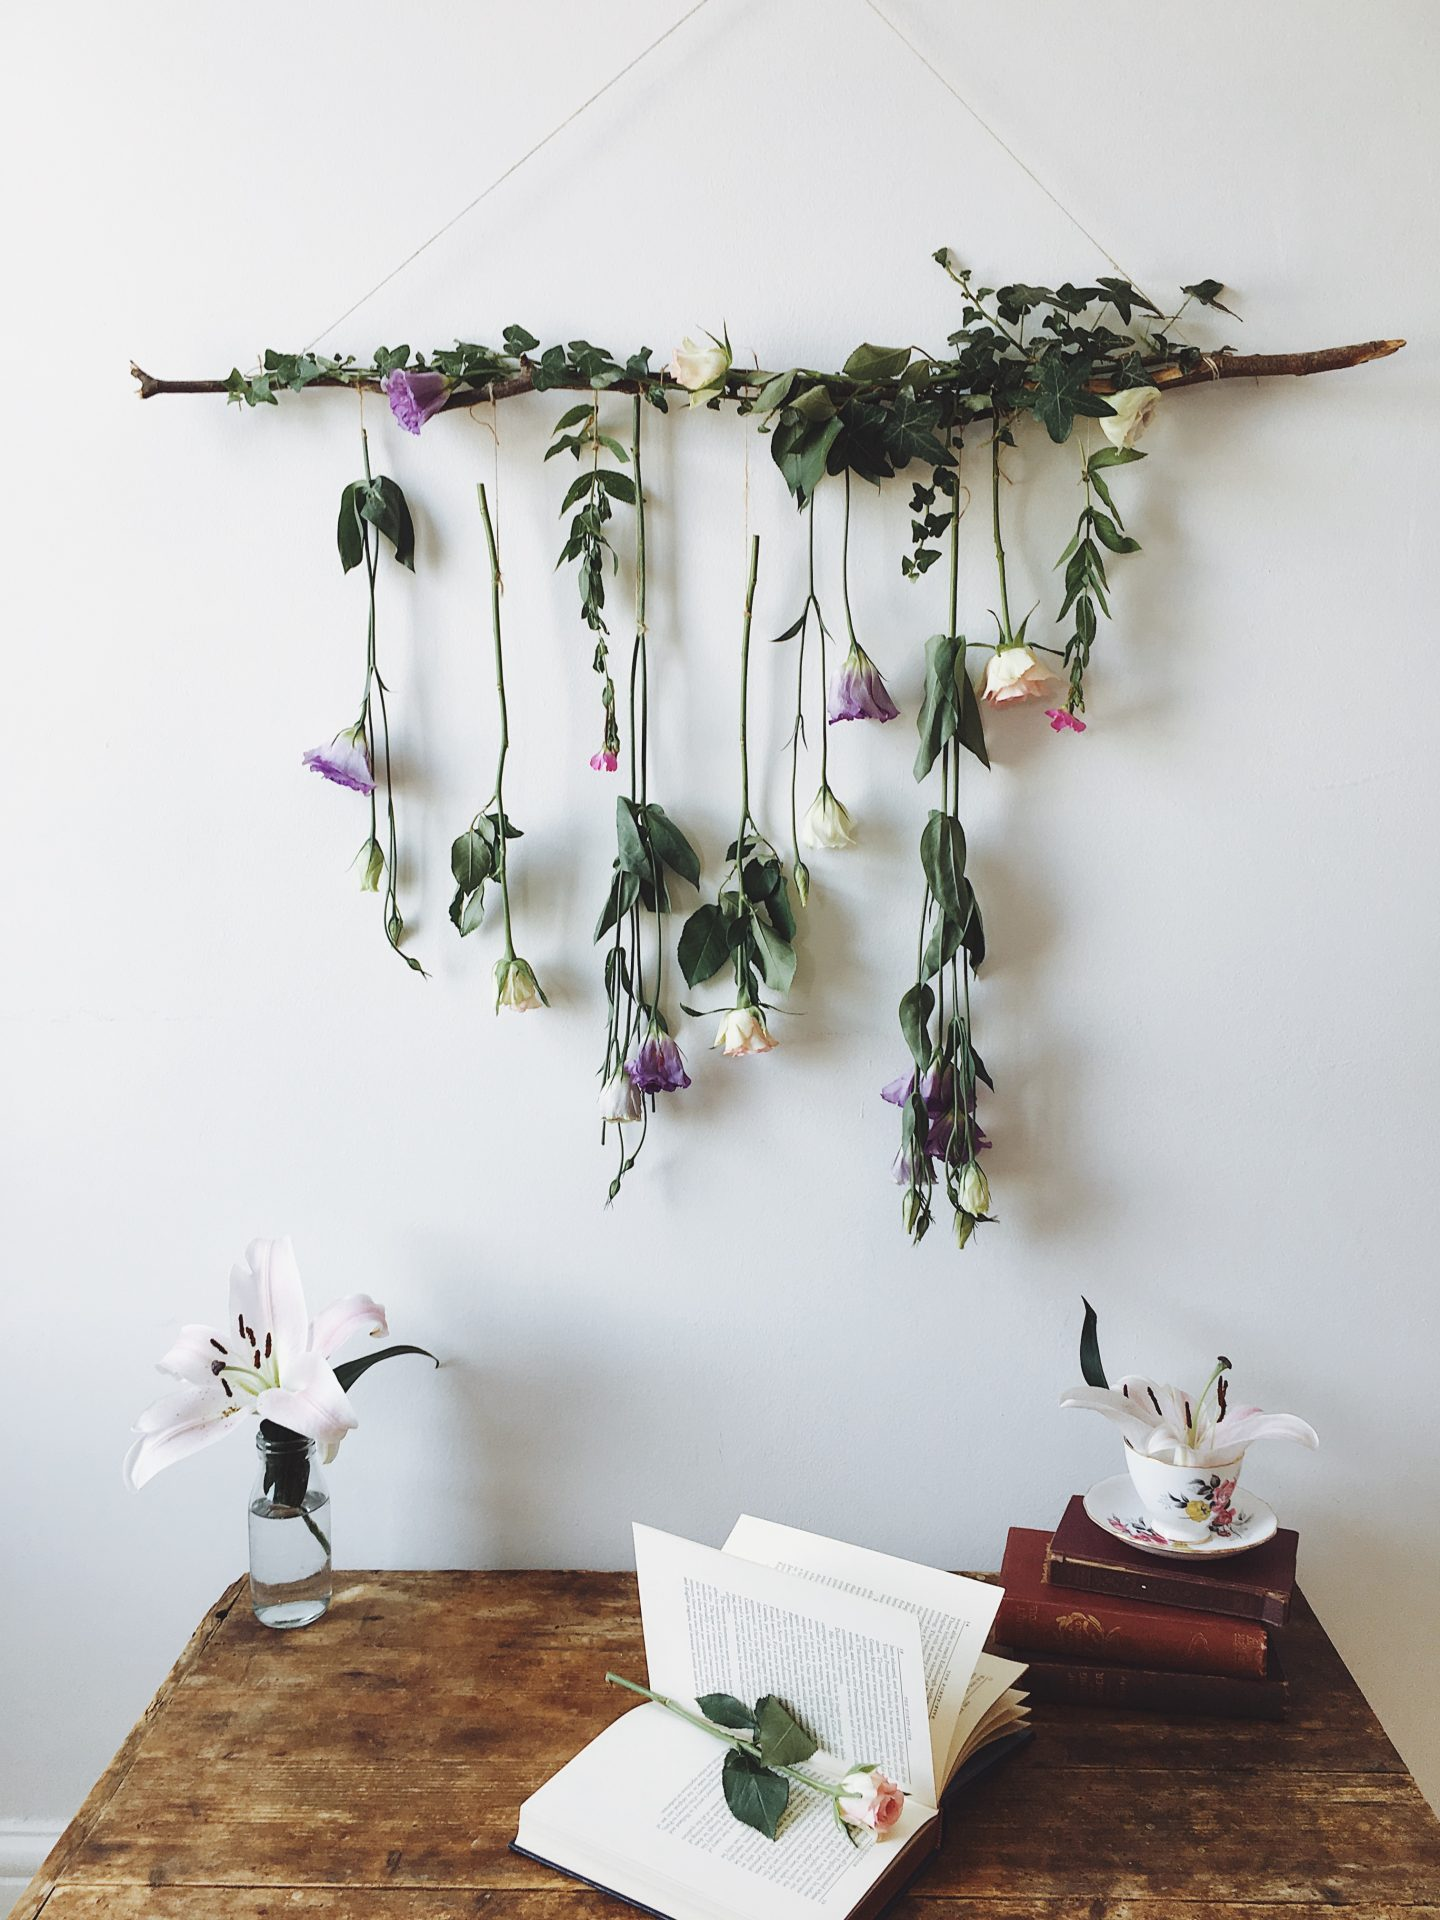 Tutorial – How to make a Hanging Flower Decoration